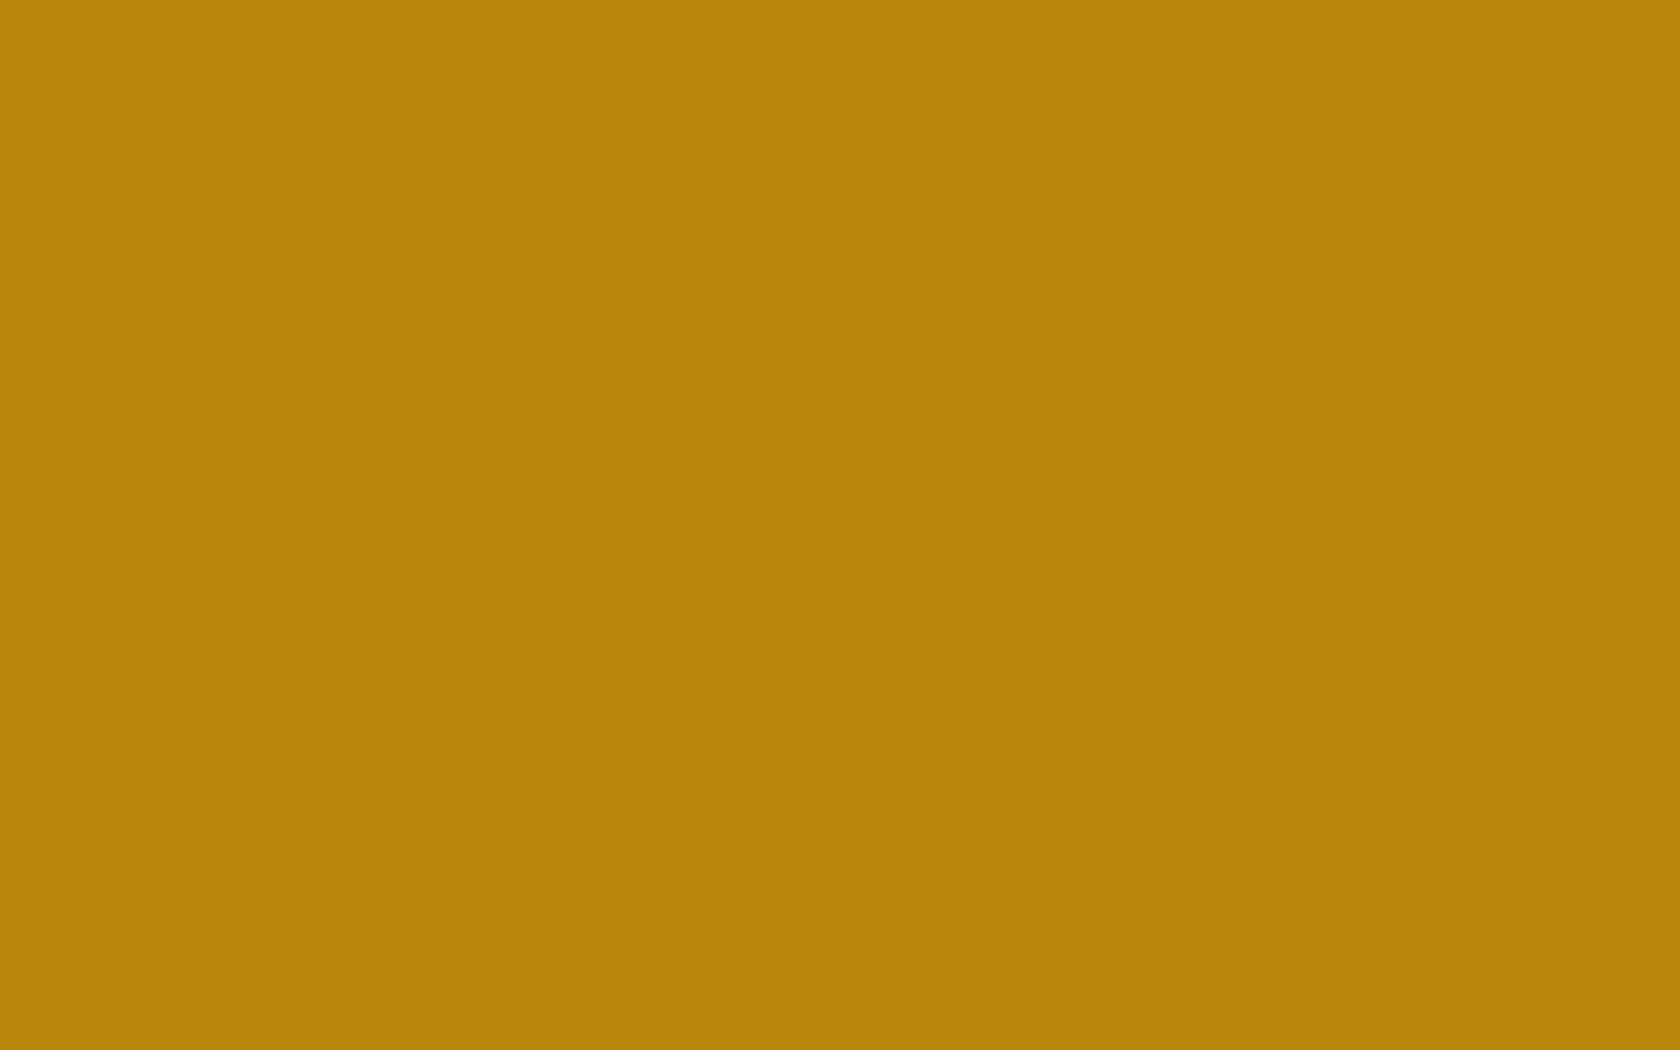 1680x1050 Dark Goldenrod Solid Color Background